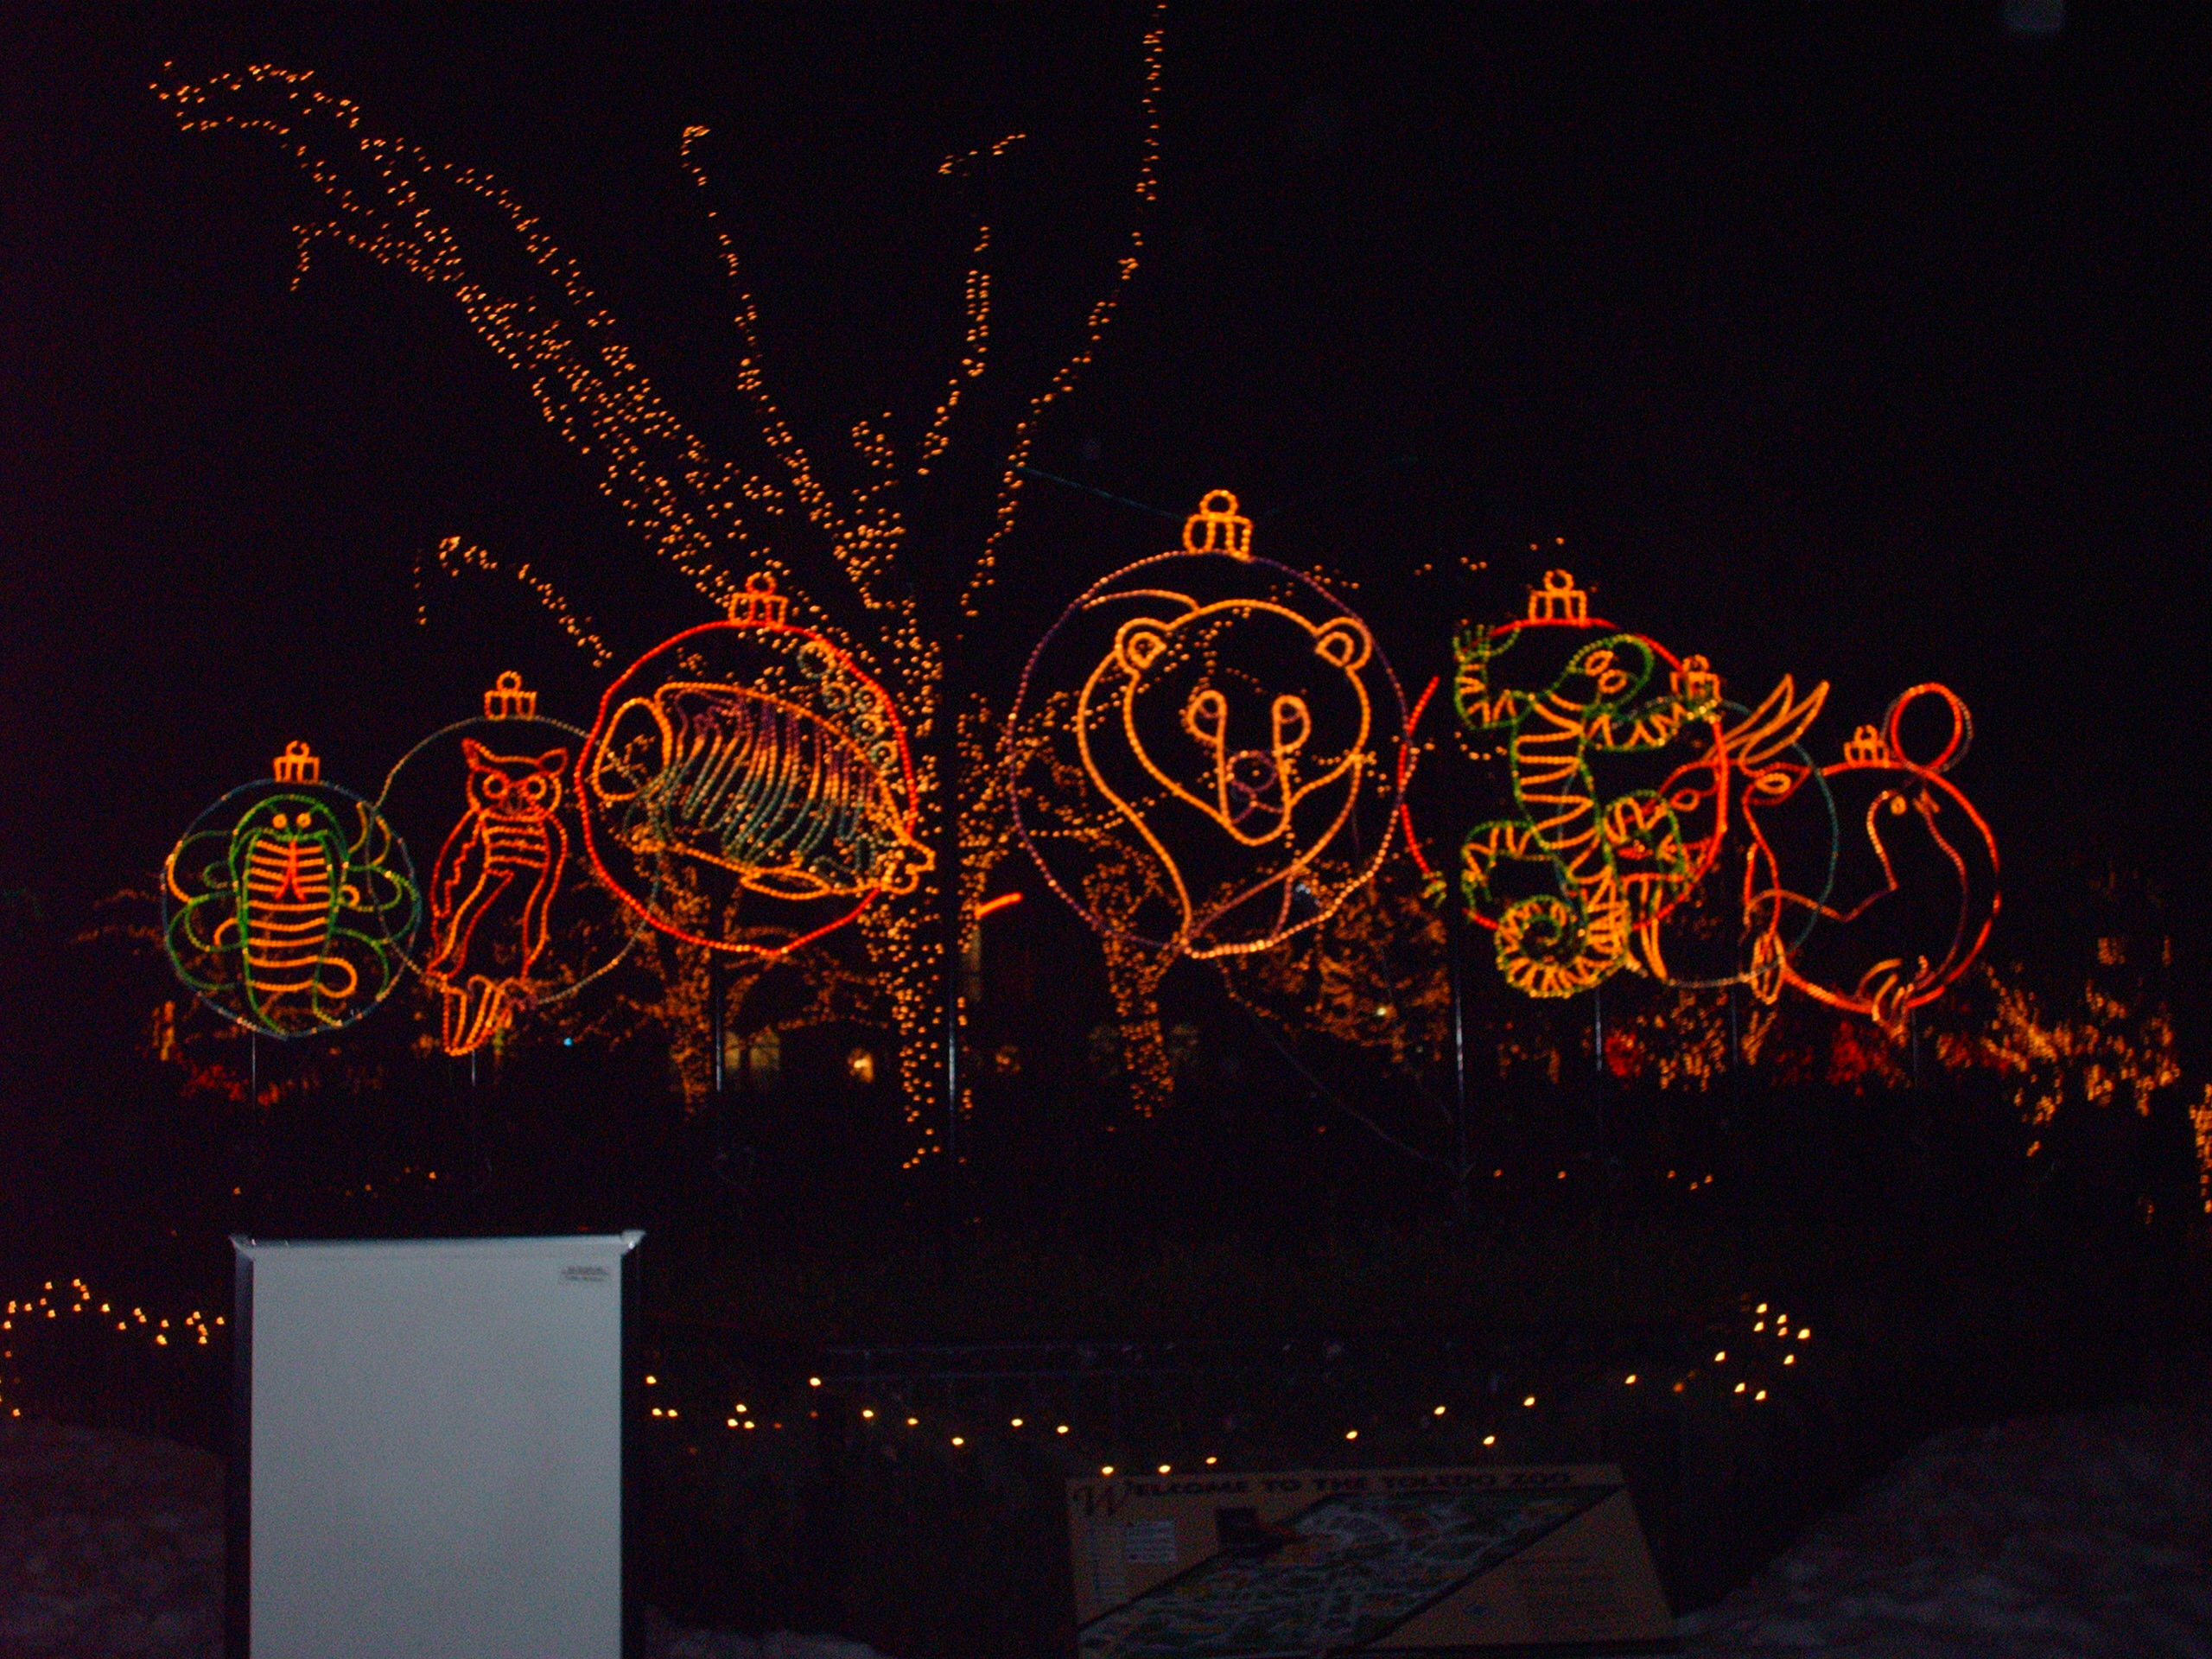 Lights at The Toledo Zoo by AnimeKing503